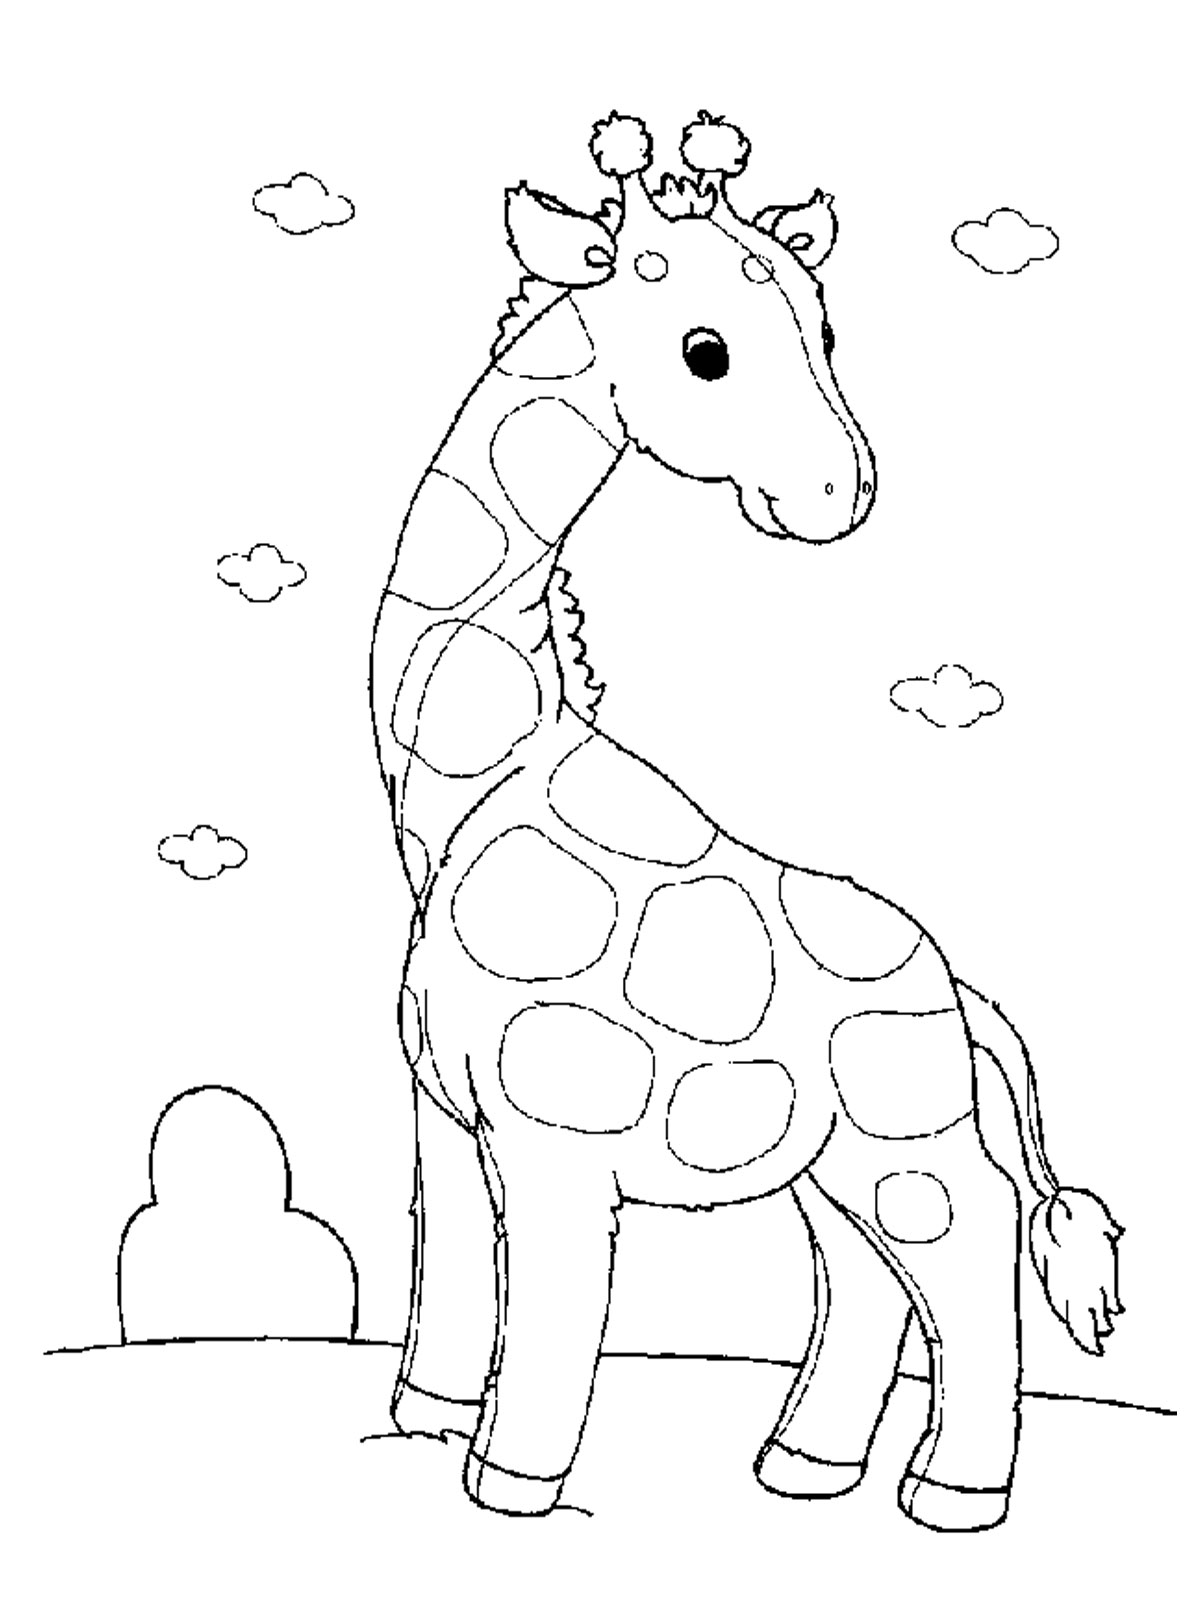 printable zoo animal coloring pages - photo#19